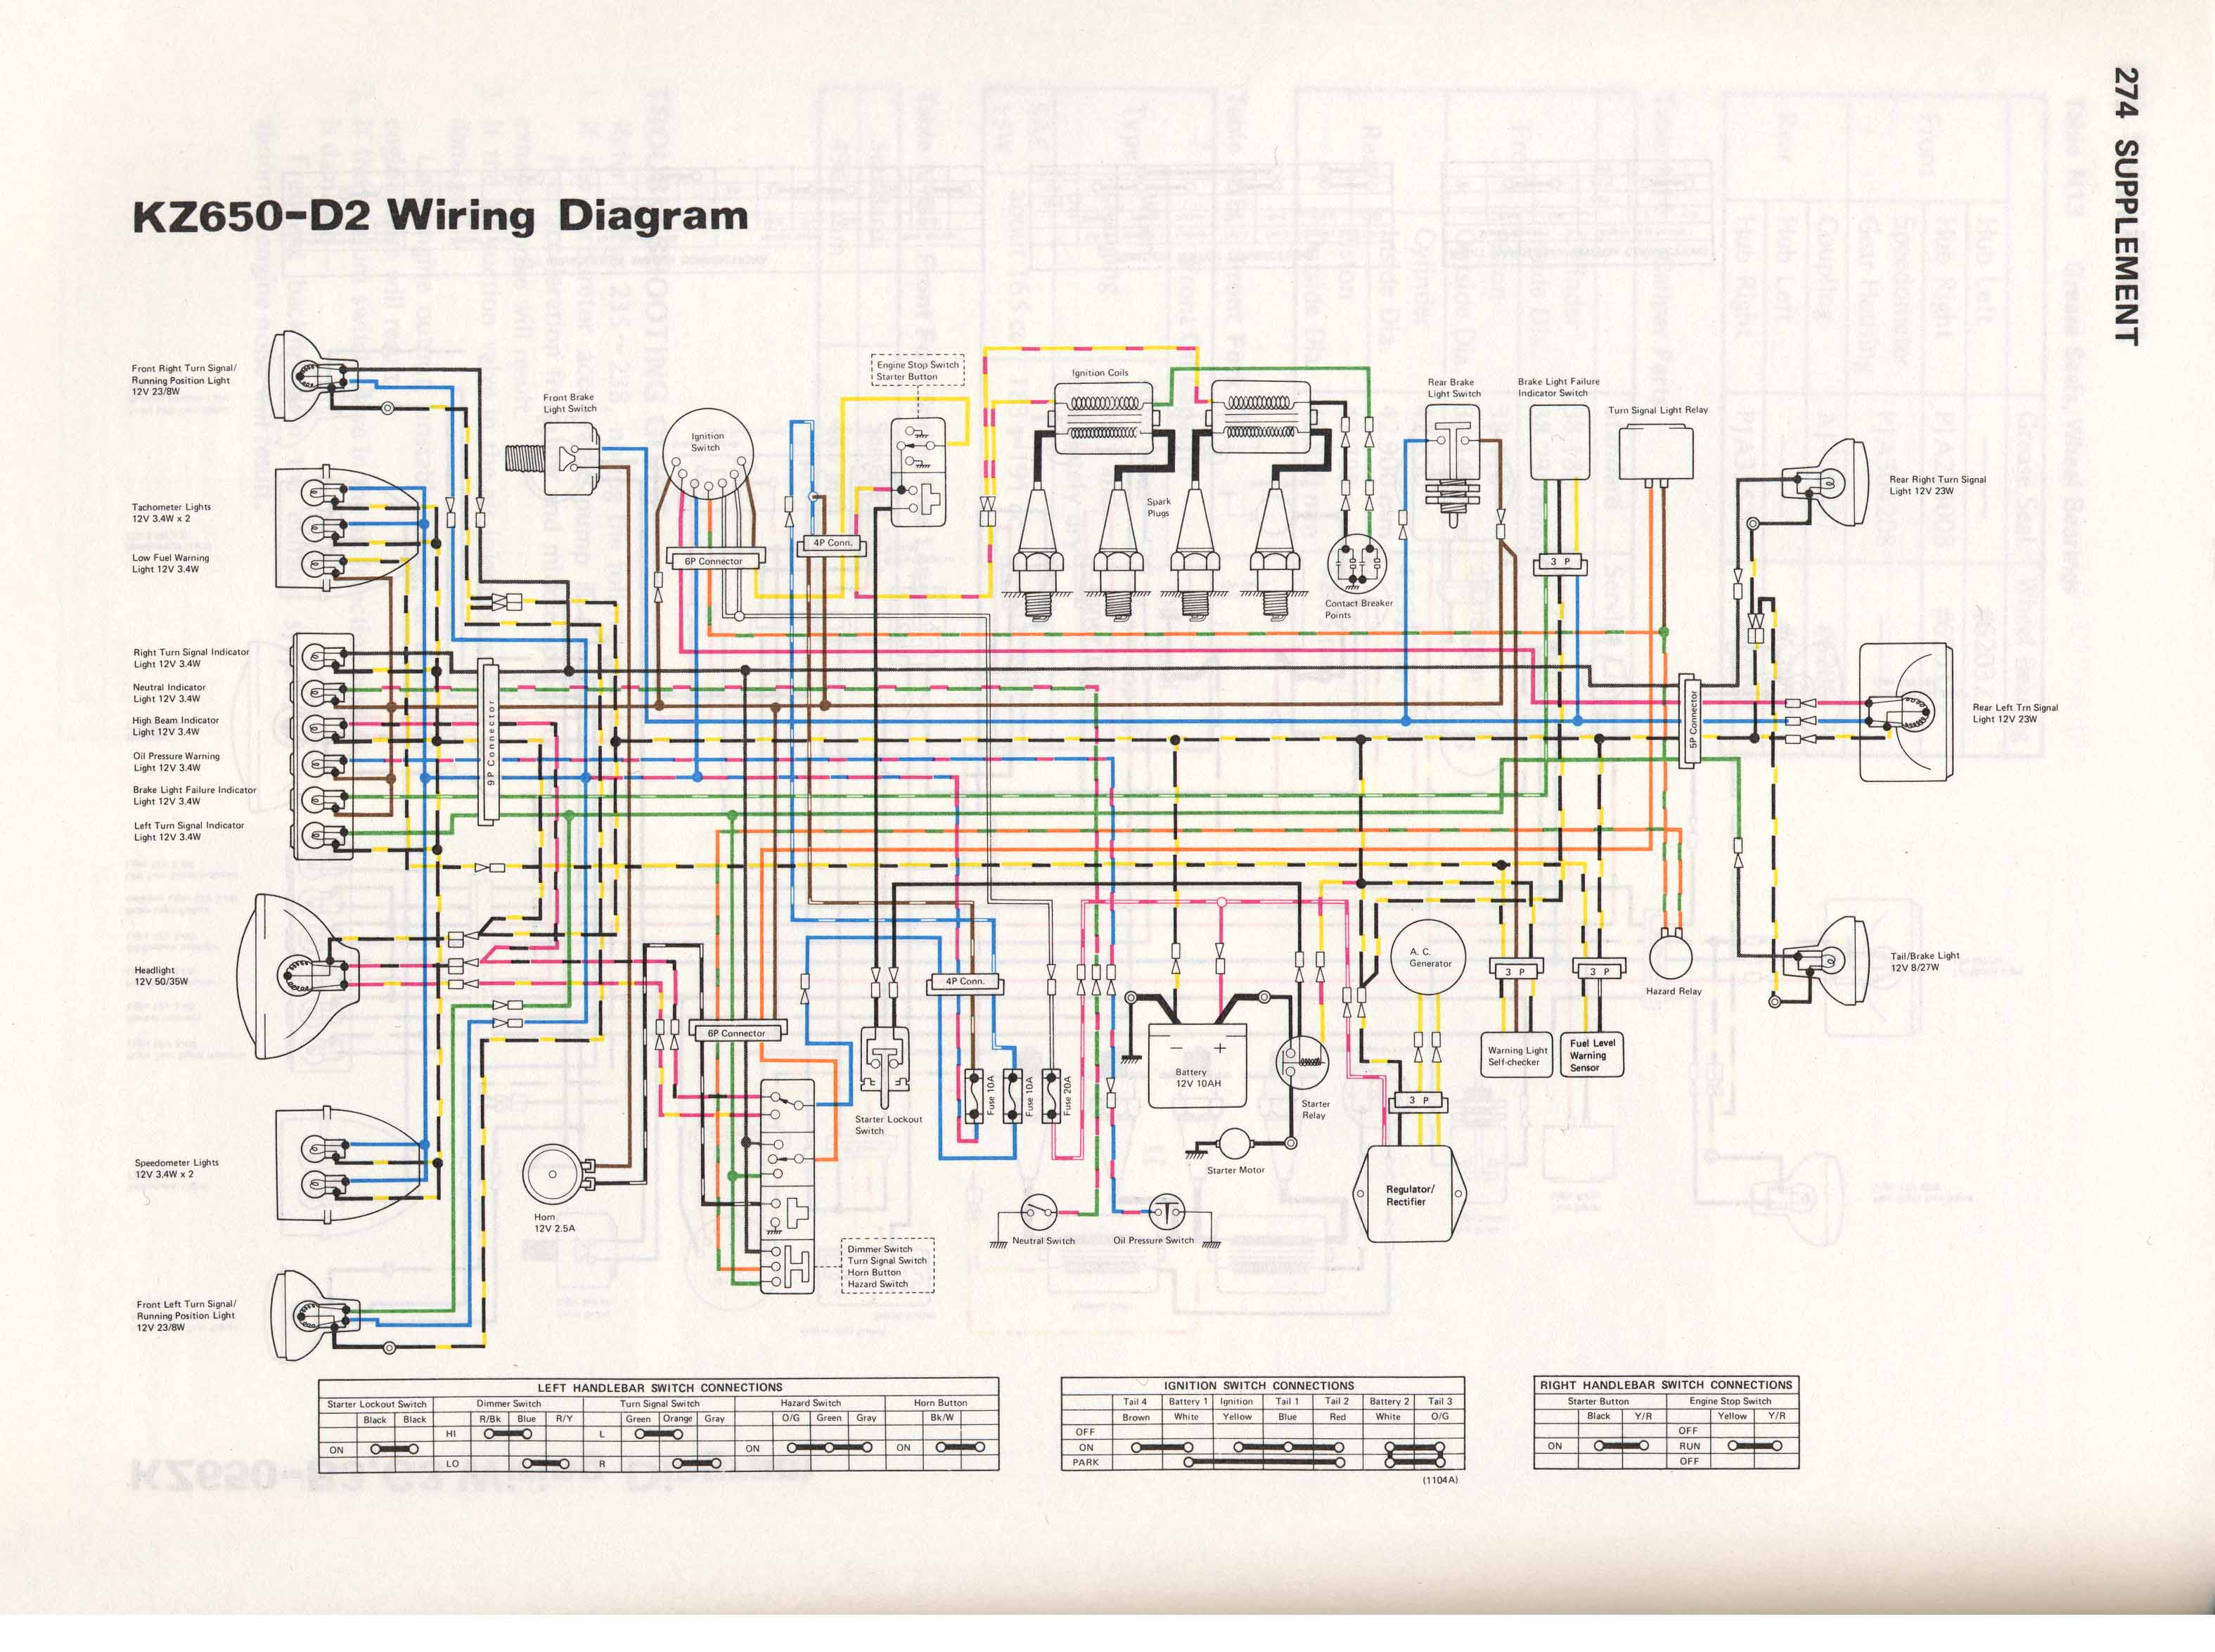 kz650 info wiring diagrams rh diagrams kz650 info Kawasaki Engine Parts Diagrams Cat 5 Wiring Diagram